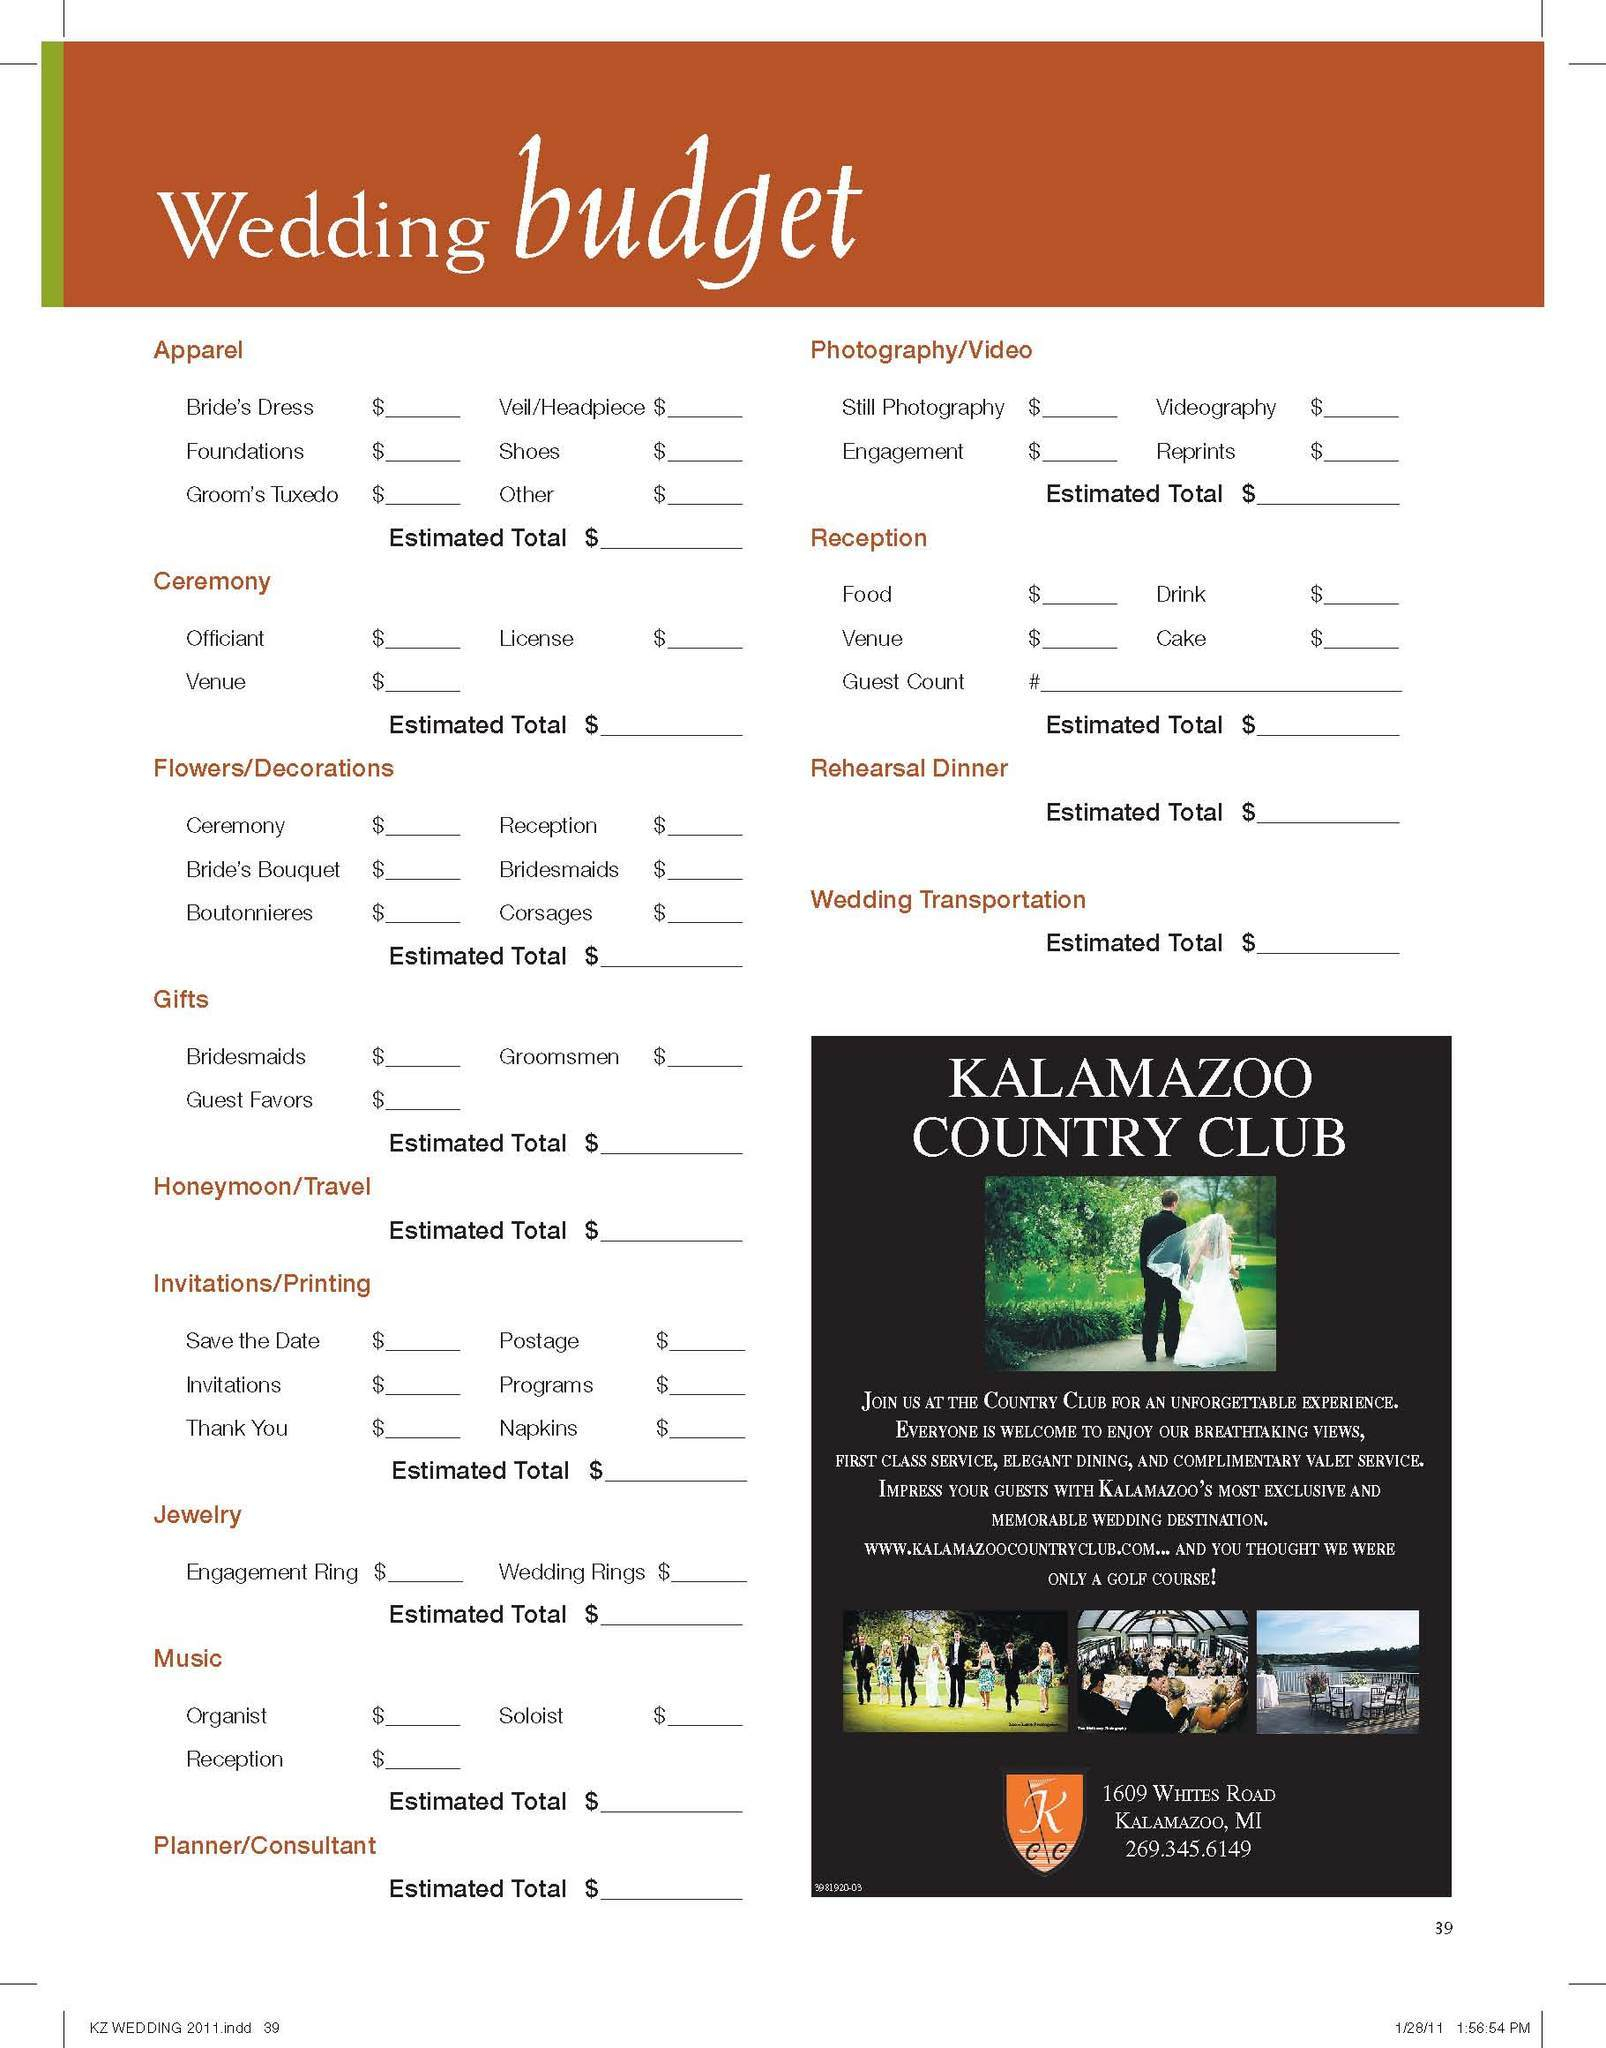 Wedding Budget Breakdown Spreadsheet For Use Our Wedding